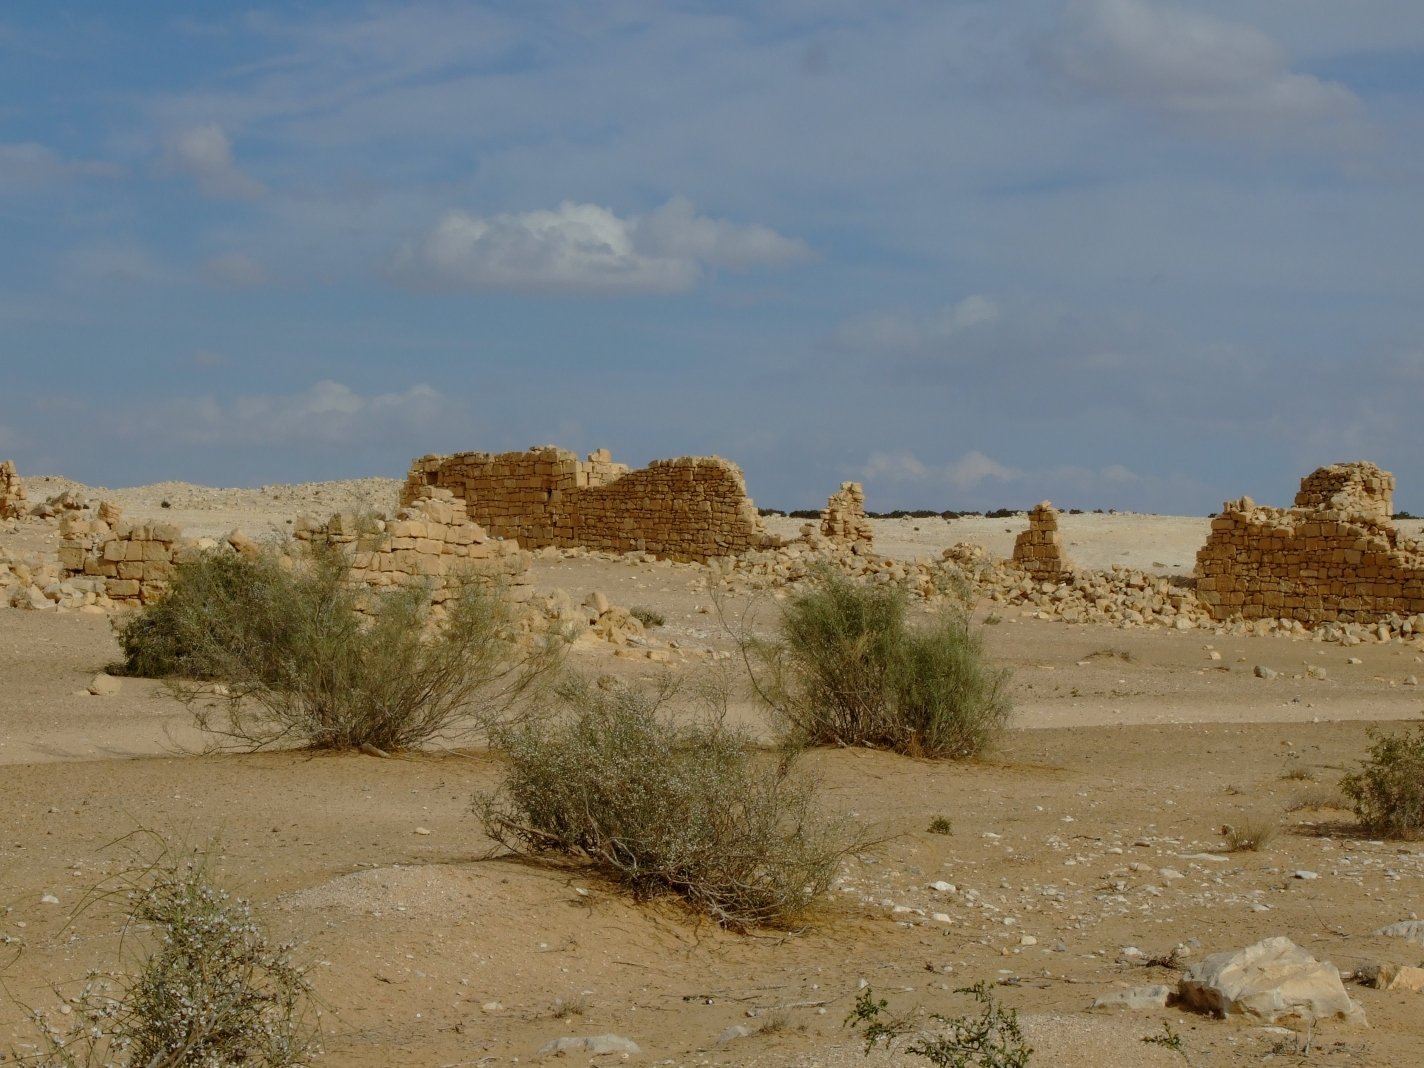 al-Khalasa - الخلصة : Village remains